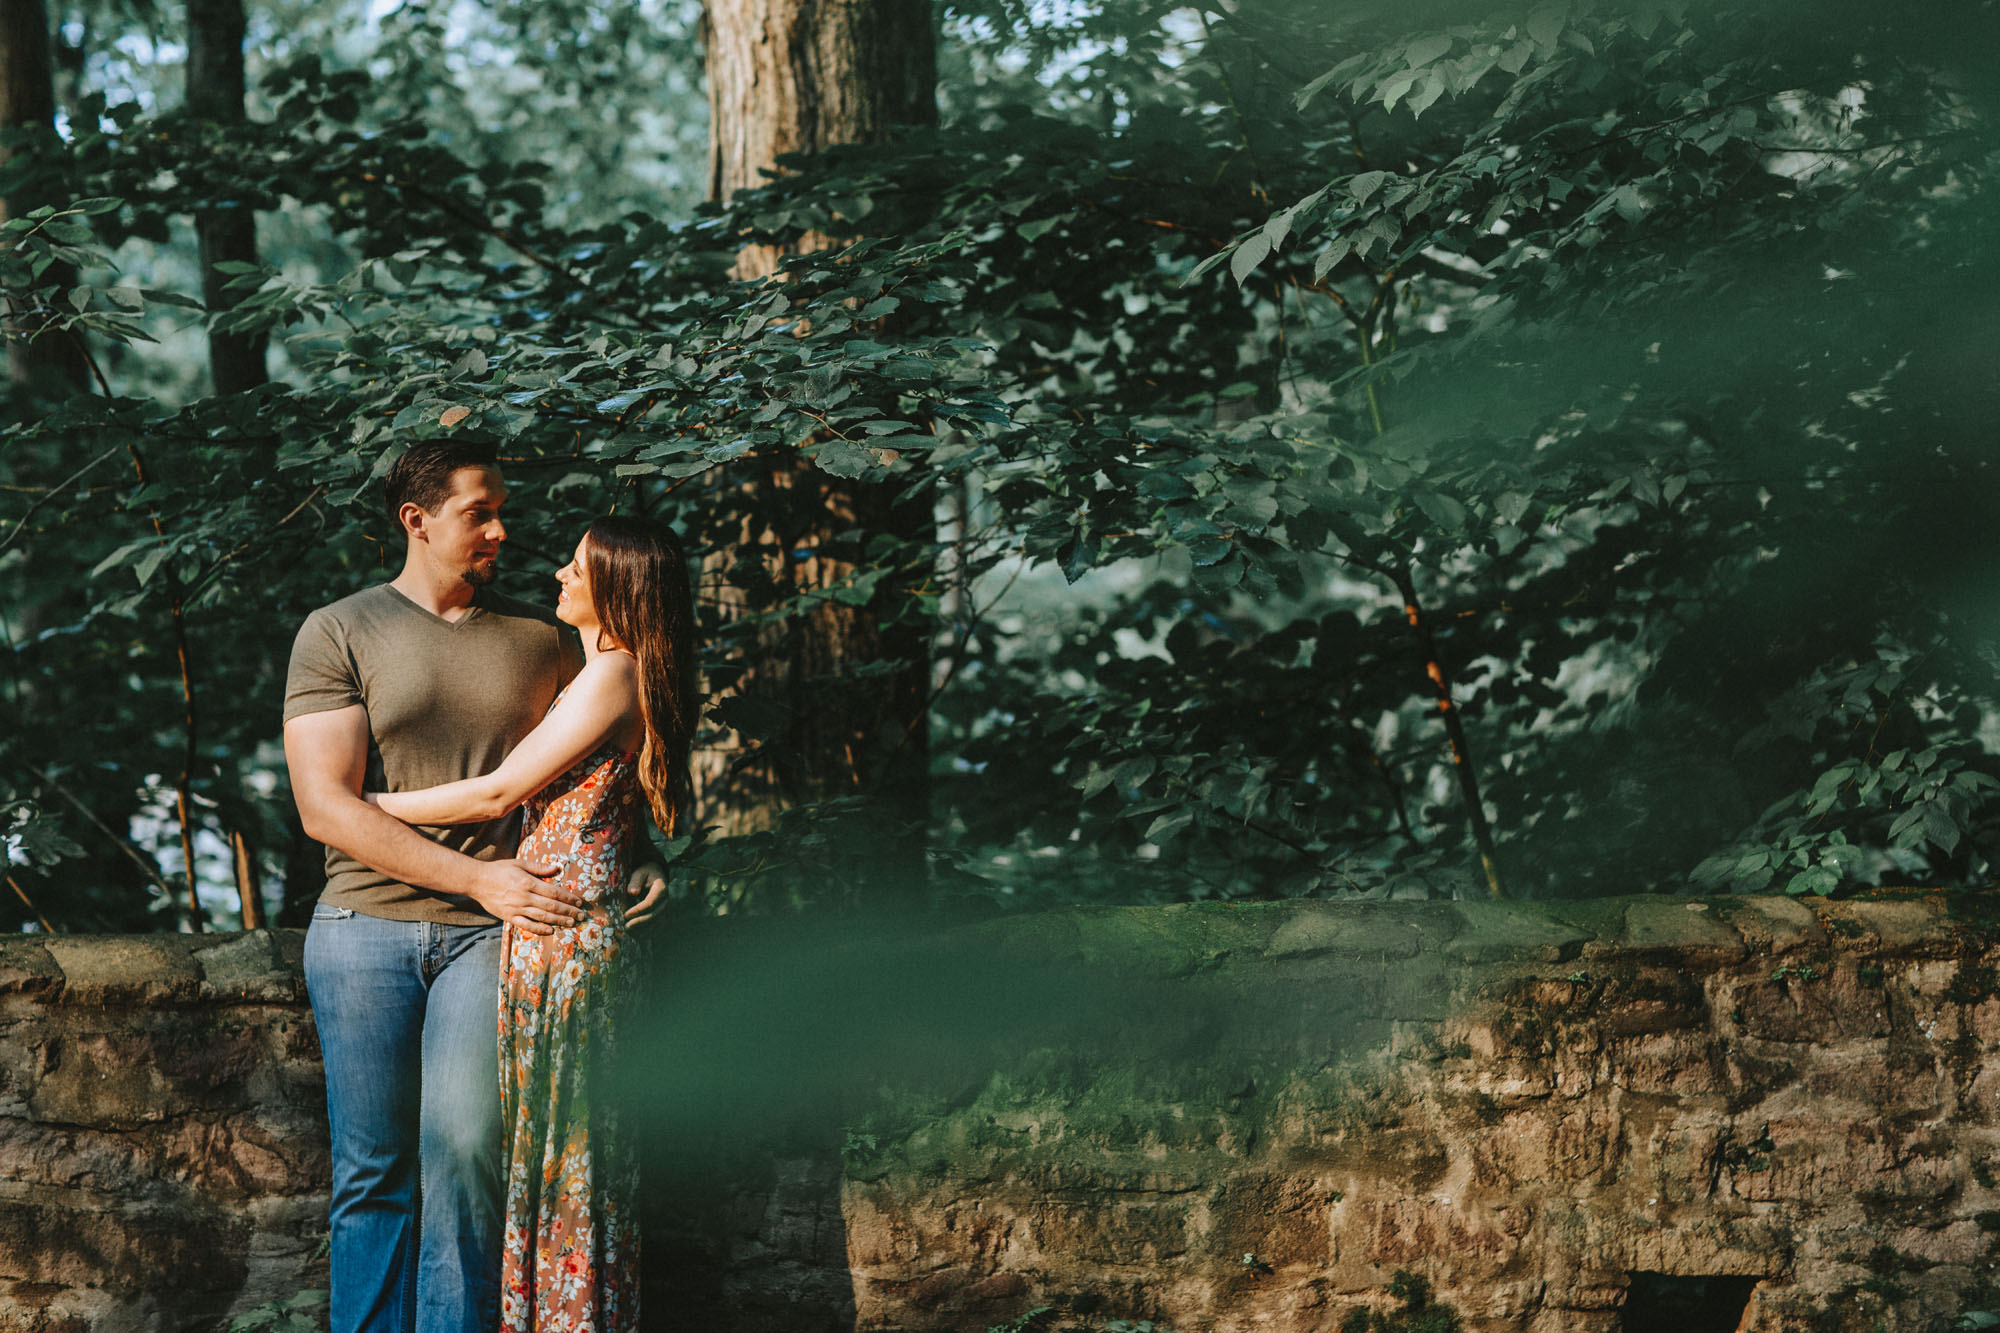 Twisted-Oaks-Studio-Tyler-Park-Engagement-9872.jpg